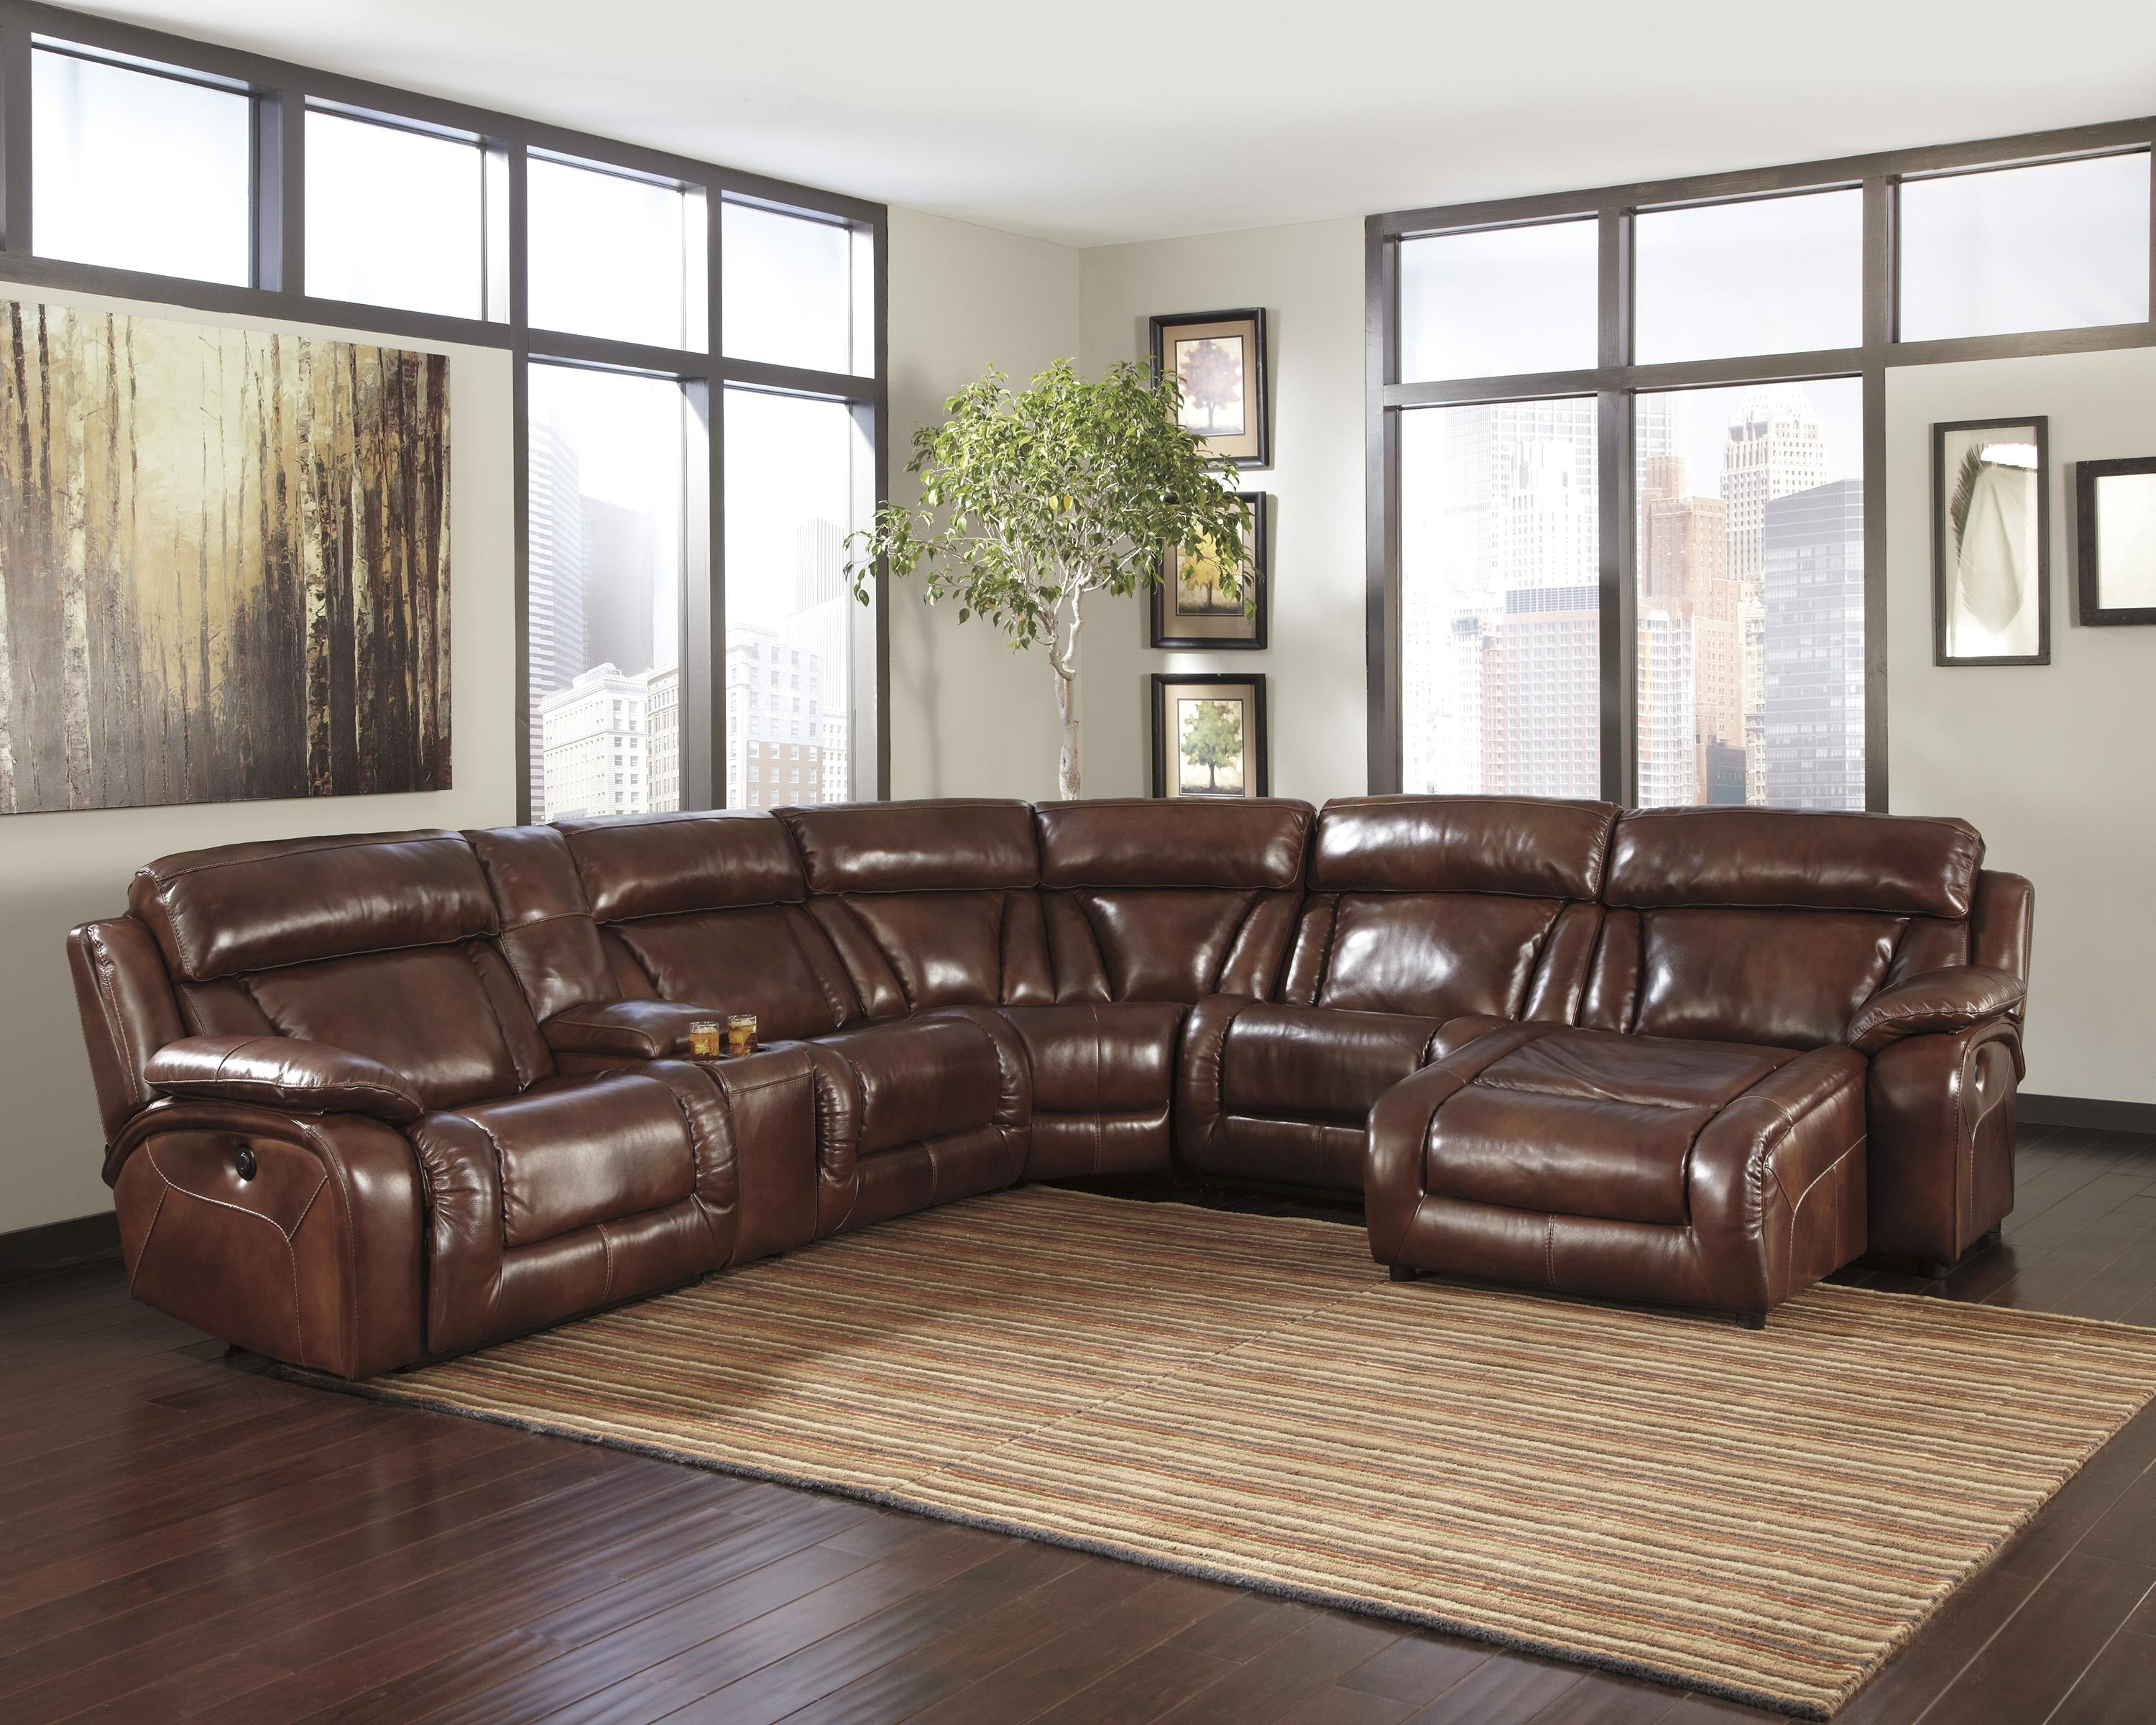 Black Leather Couch Living Room – Destroybmx Inside Ashley Faux Leather Sectional Sofas (View 9 of 20)